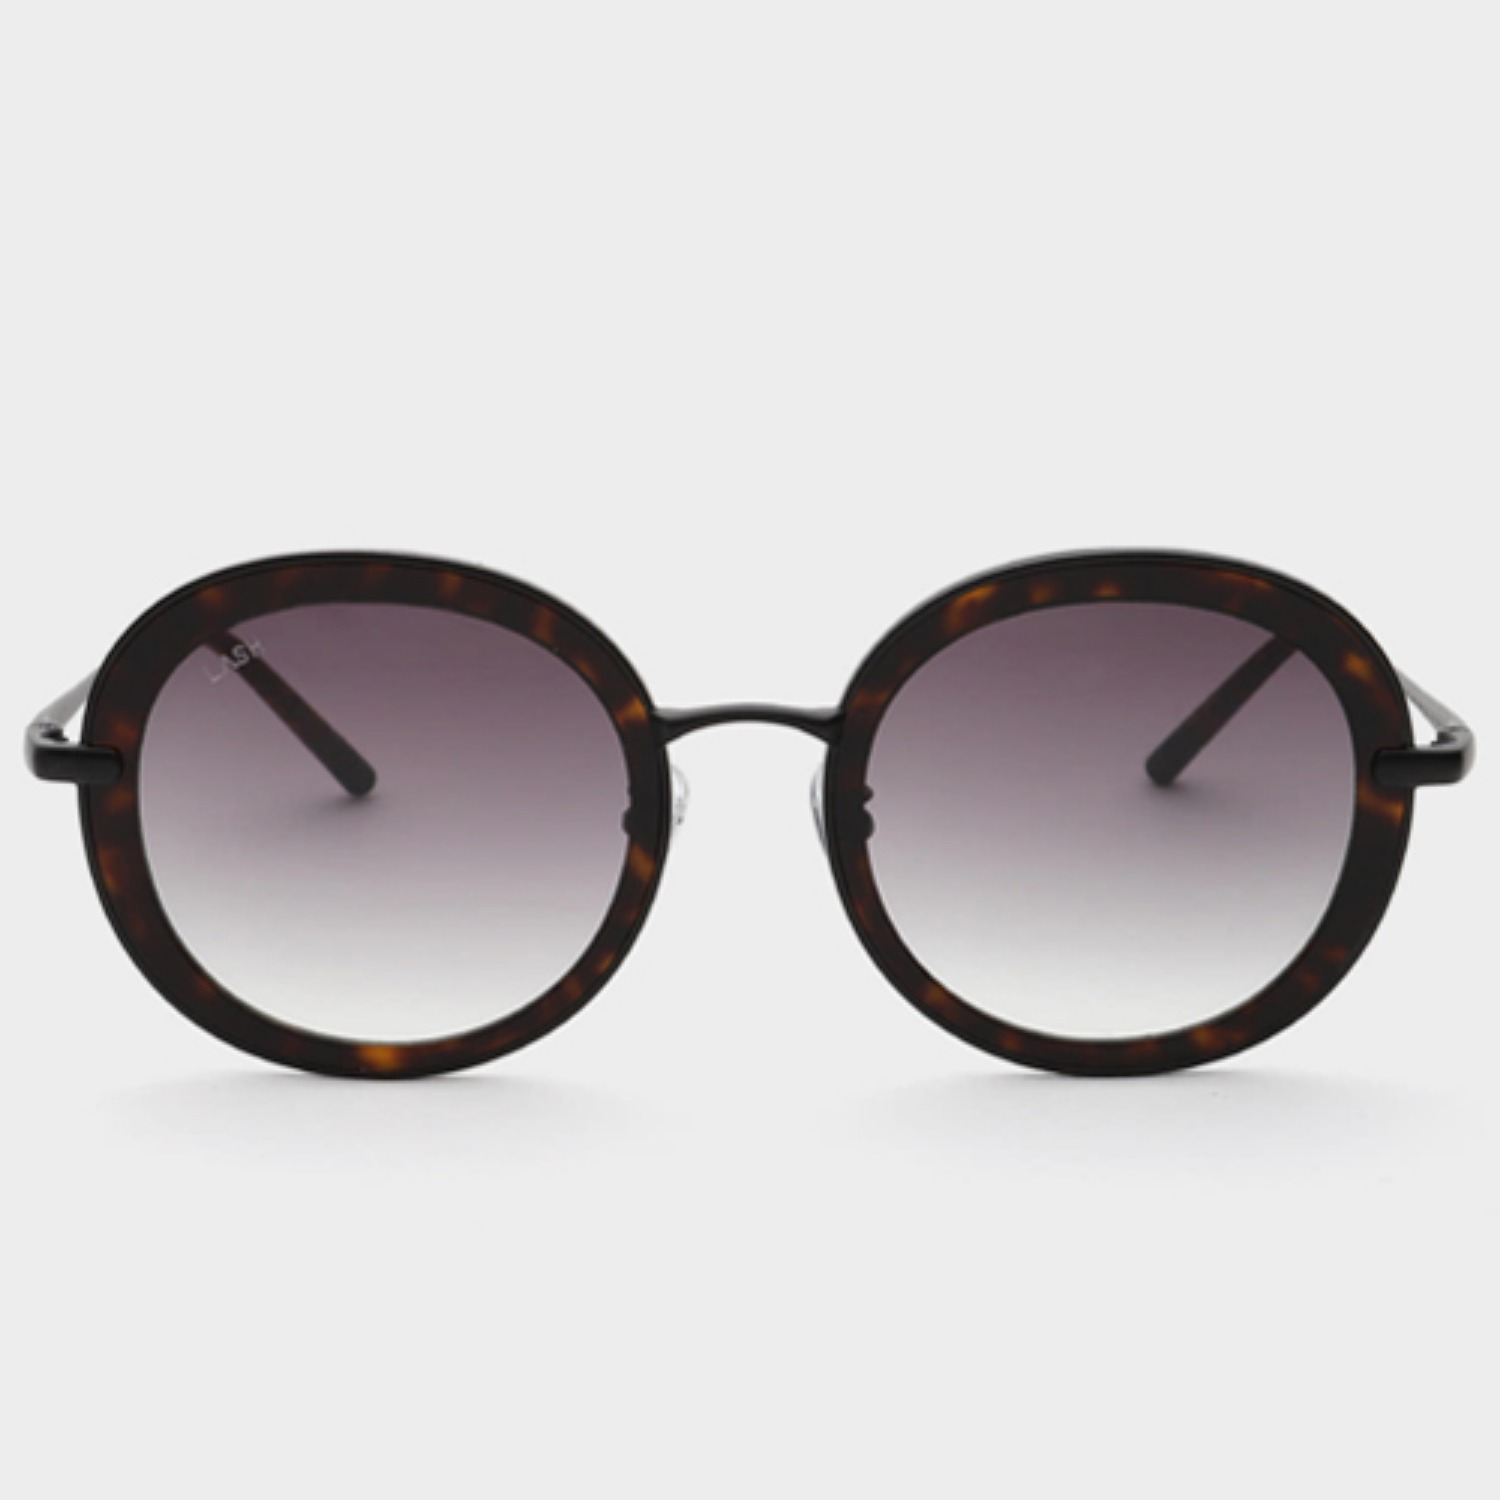 래쉬 BELIEF BKH01 (Gradation Lens)